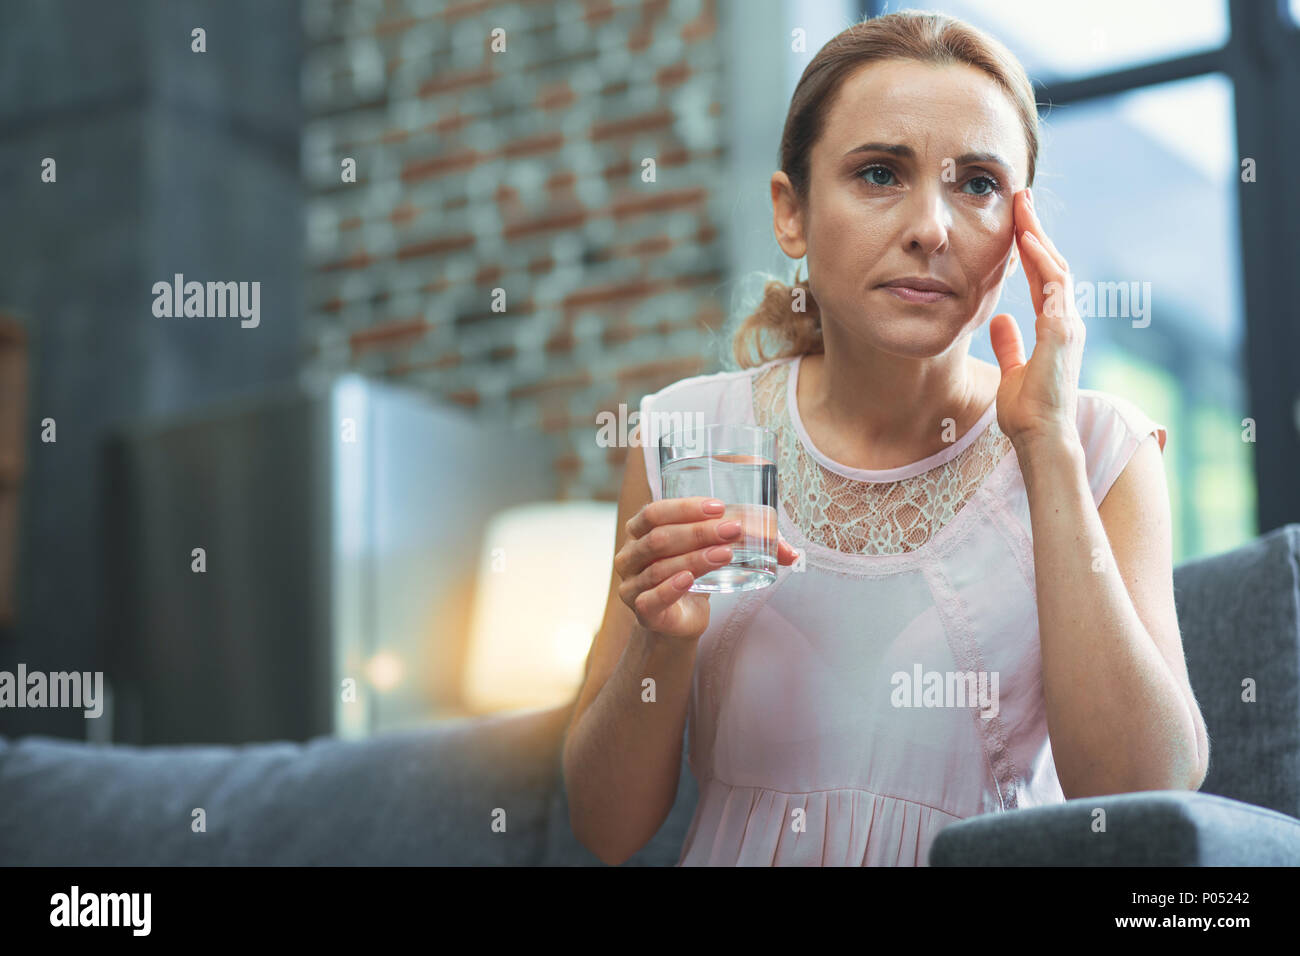 Concentrated mature woman suffering from migraine - Stock Image